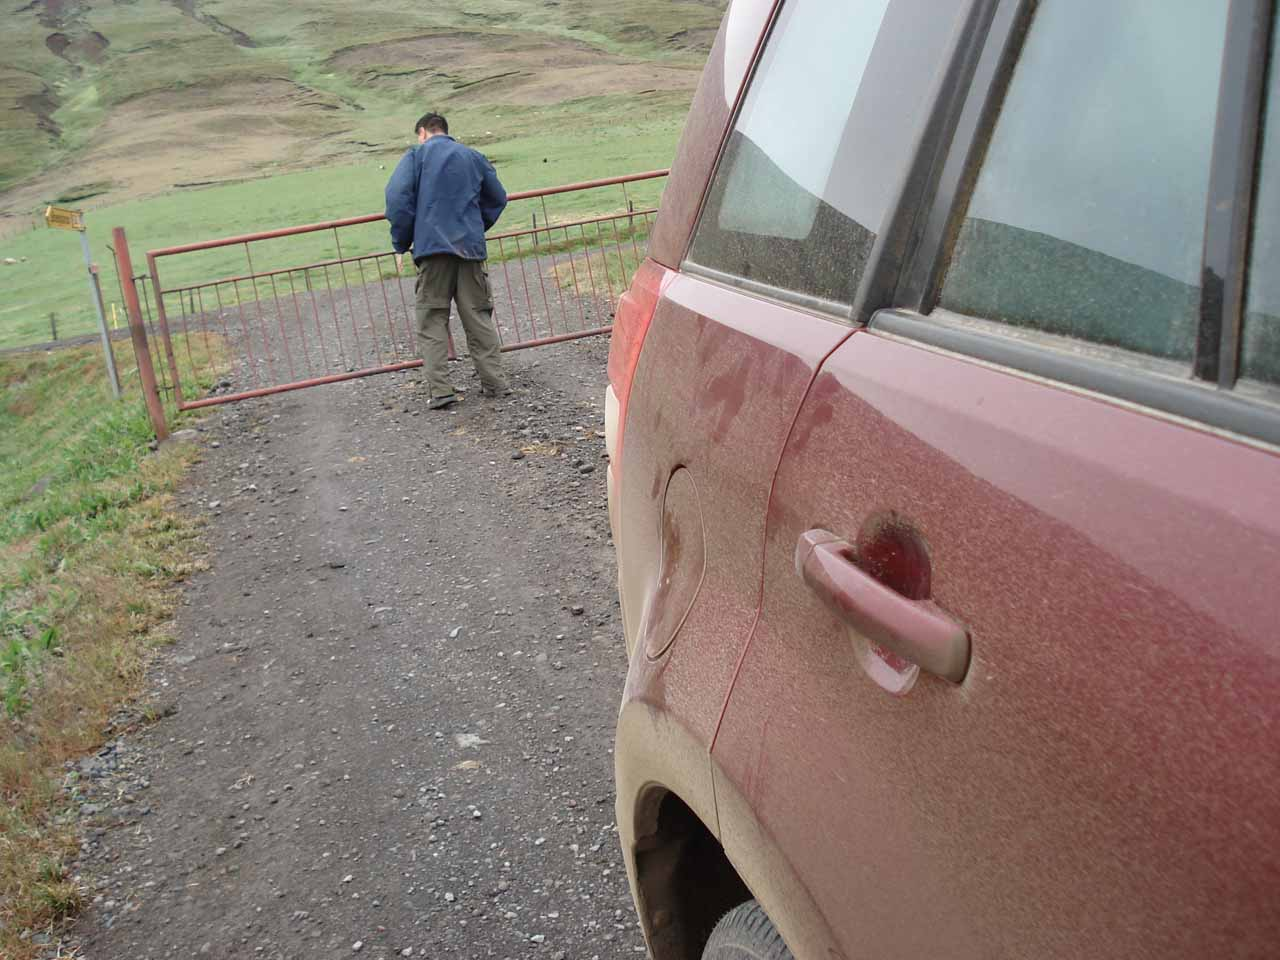 This was the gate where I had to leave the car to open the gate, get back in the car to drive through it, then leave the car to close the gate before I got back in the car to drive again